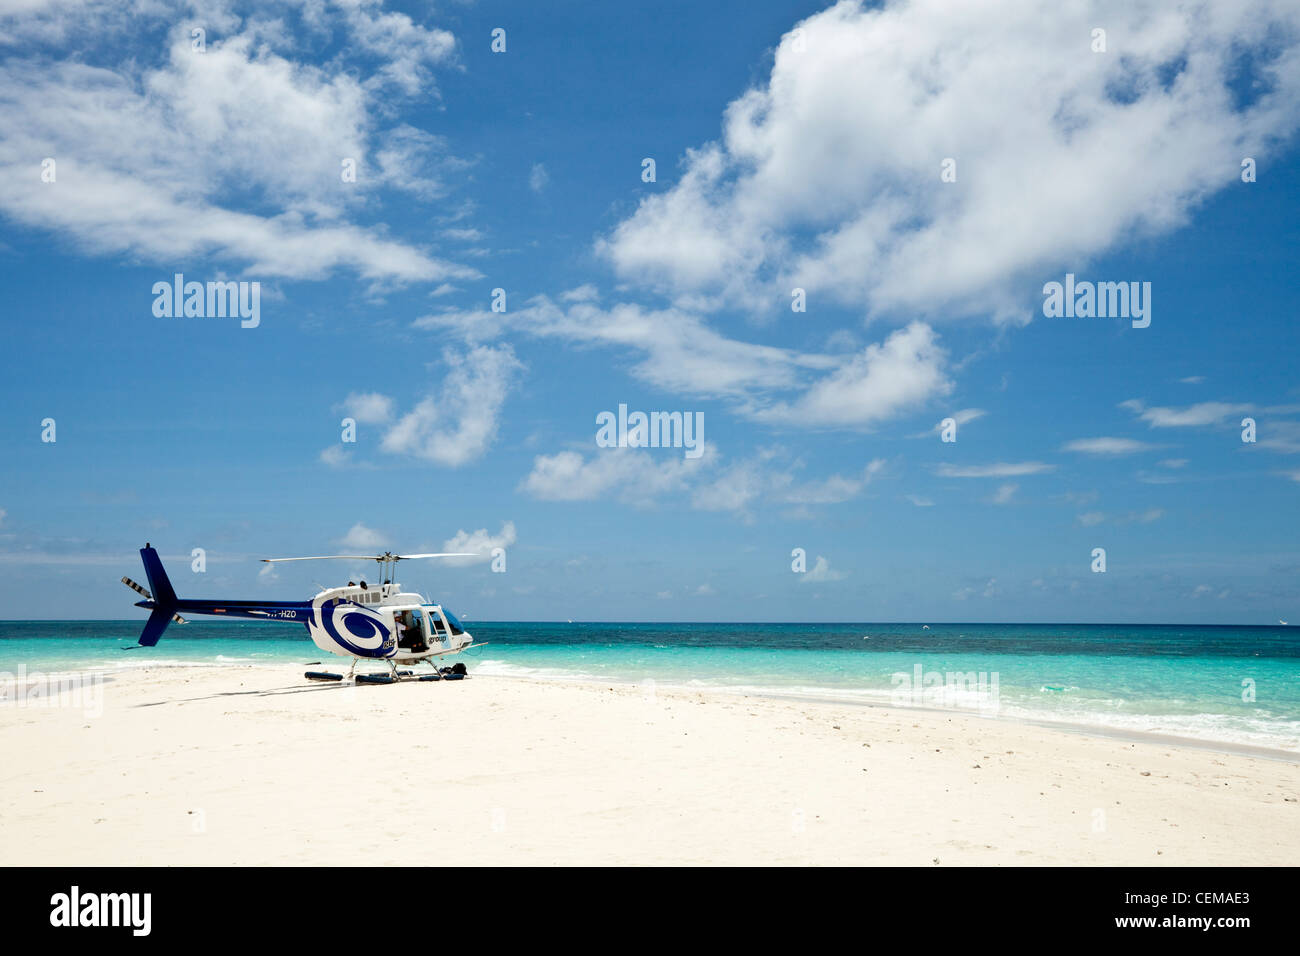 Helicopter on Vlassof Cay - a sand cay off the coast of Cairns. Great Barrier Reef Marine Park, Queensland, Australia Stock Photo